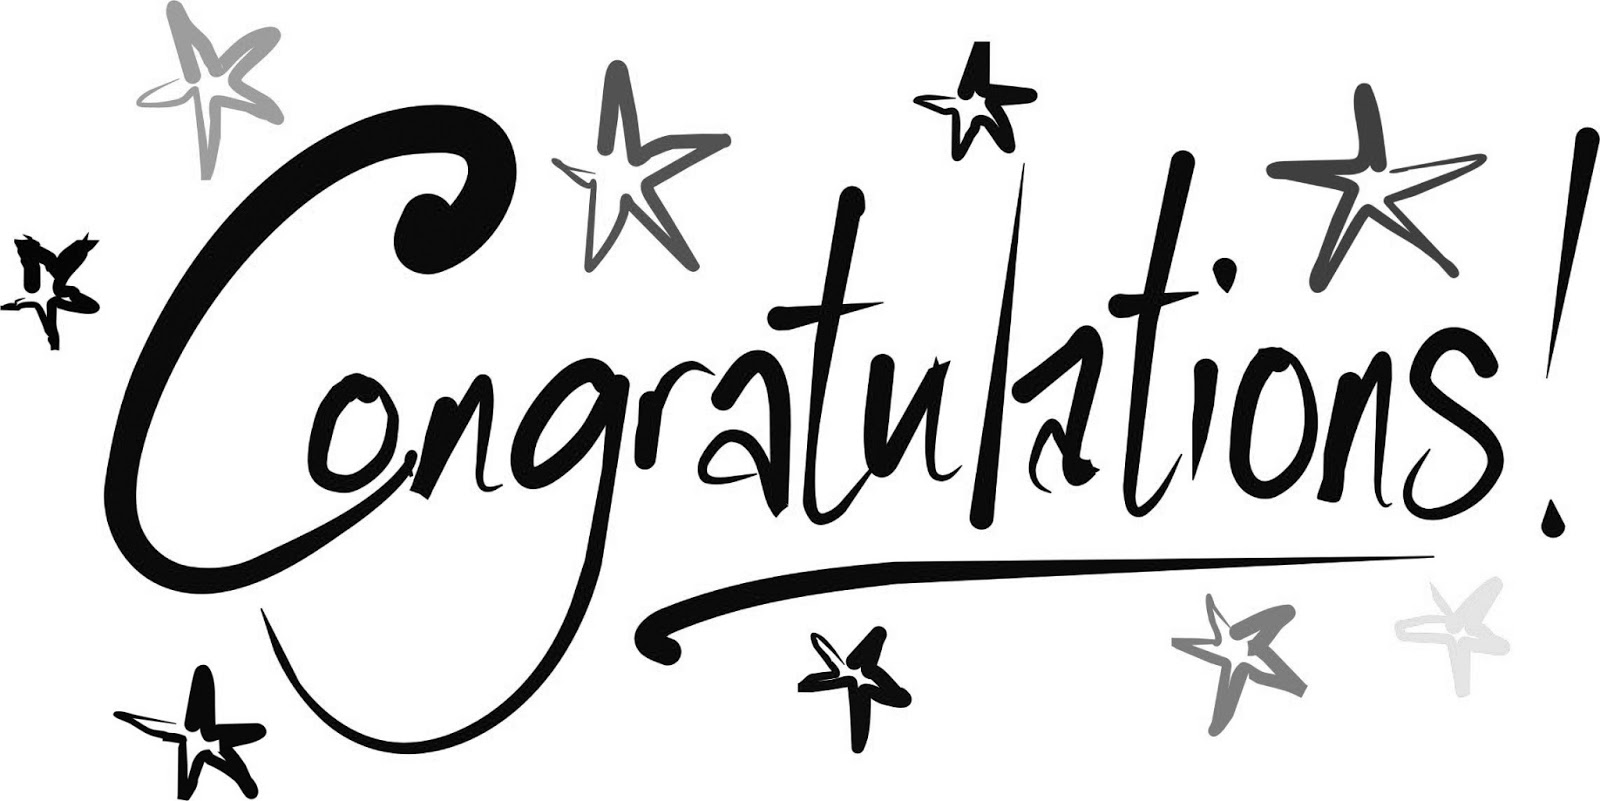 Congratulations clipart anima - Congratulations Clip Art